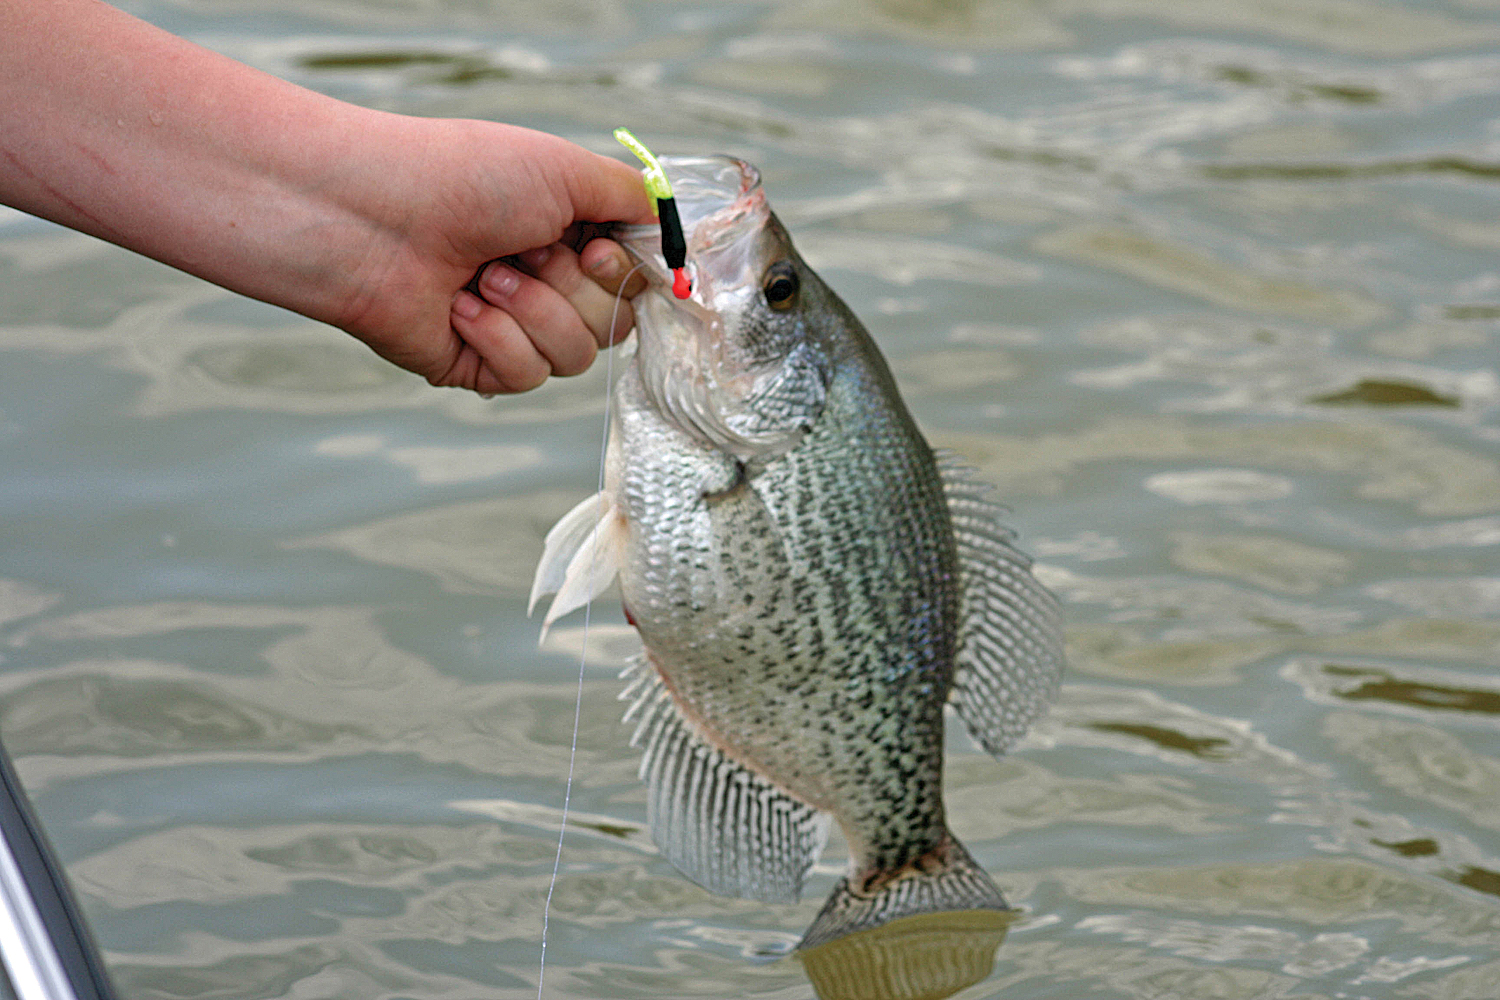 Secrets to january crappie fishing great days outdoors for Pictures of crappie fish